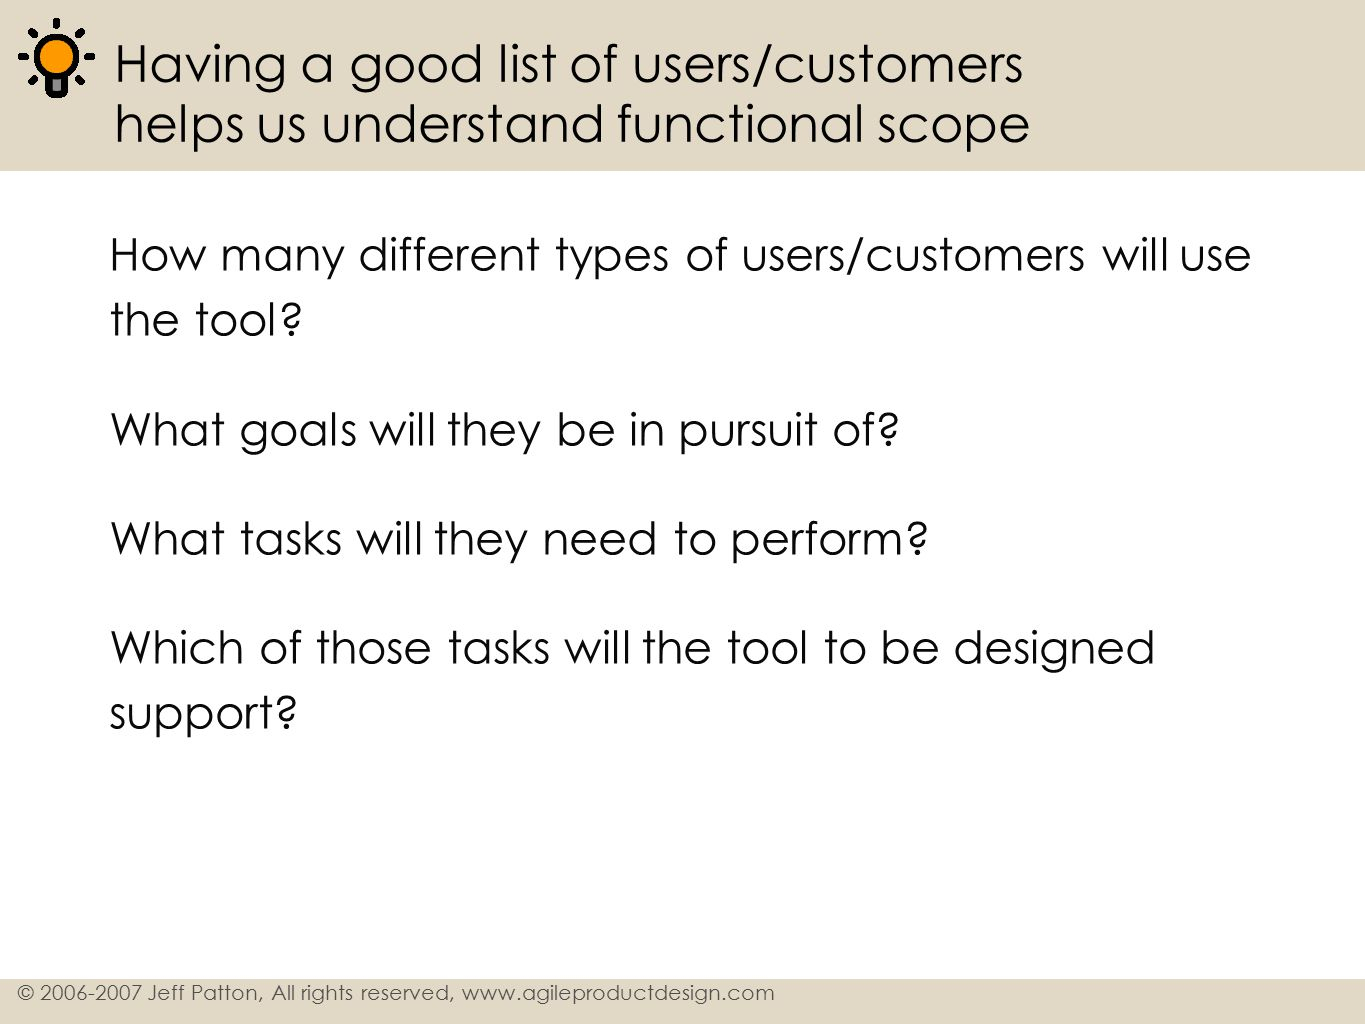 Having a good list of users/customers helps us understand functional scope